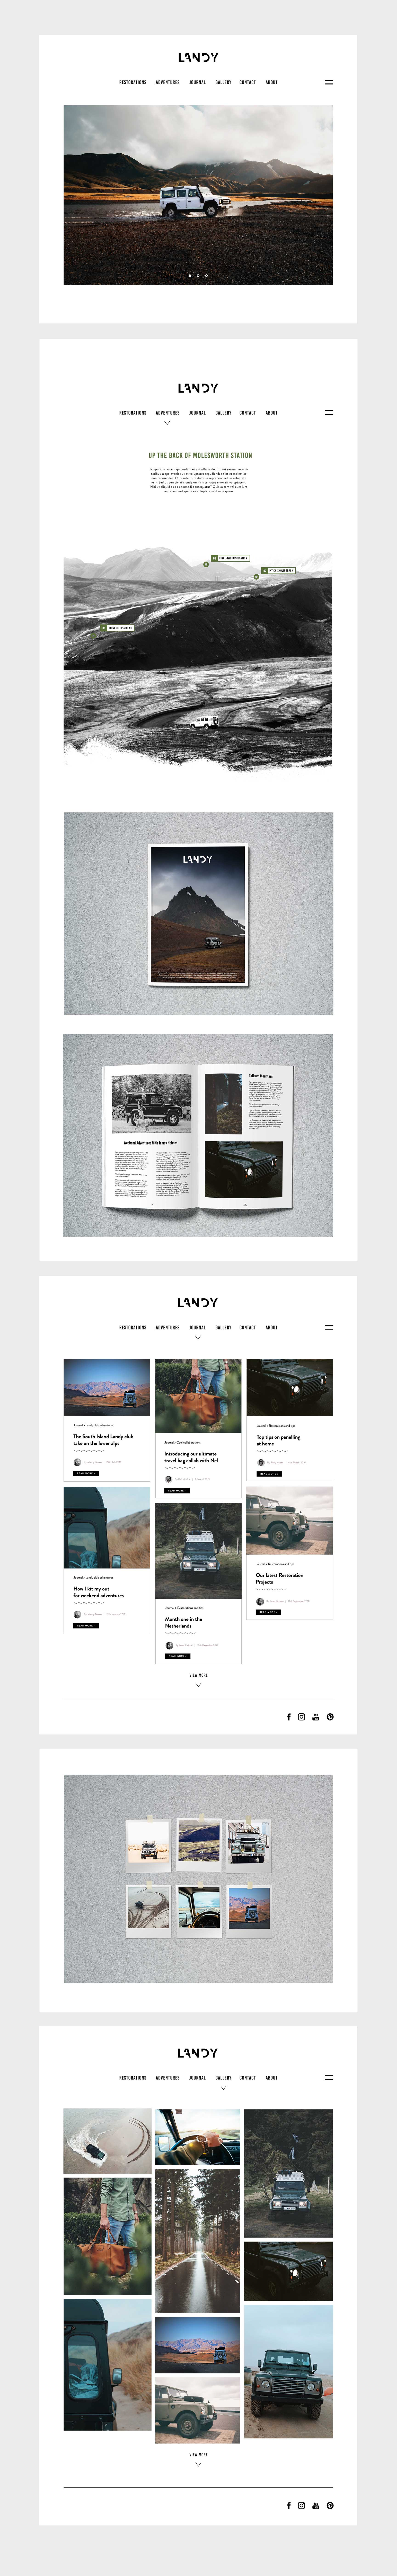 Landy Full page mock-up